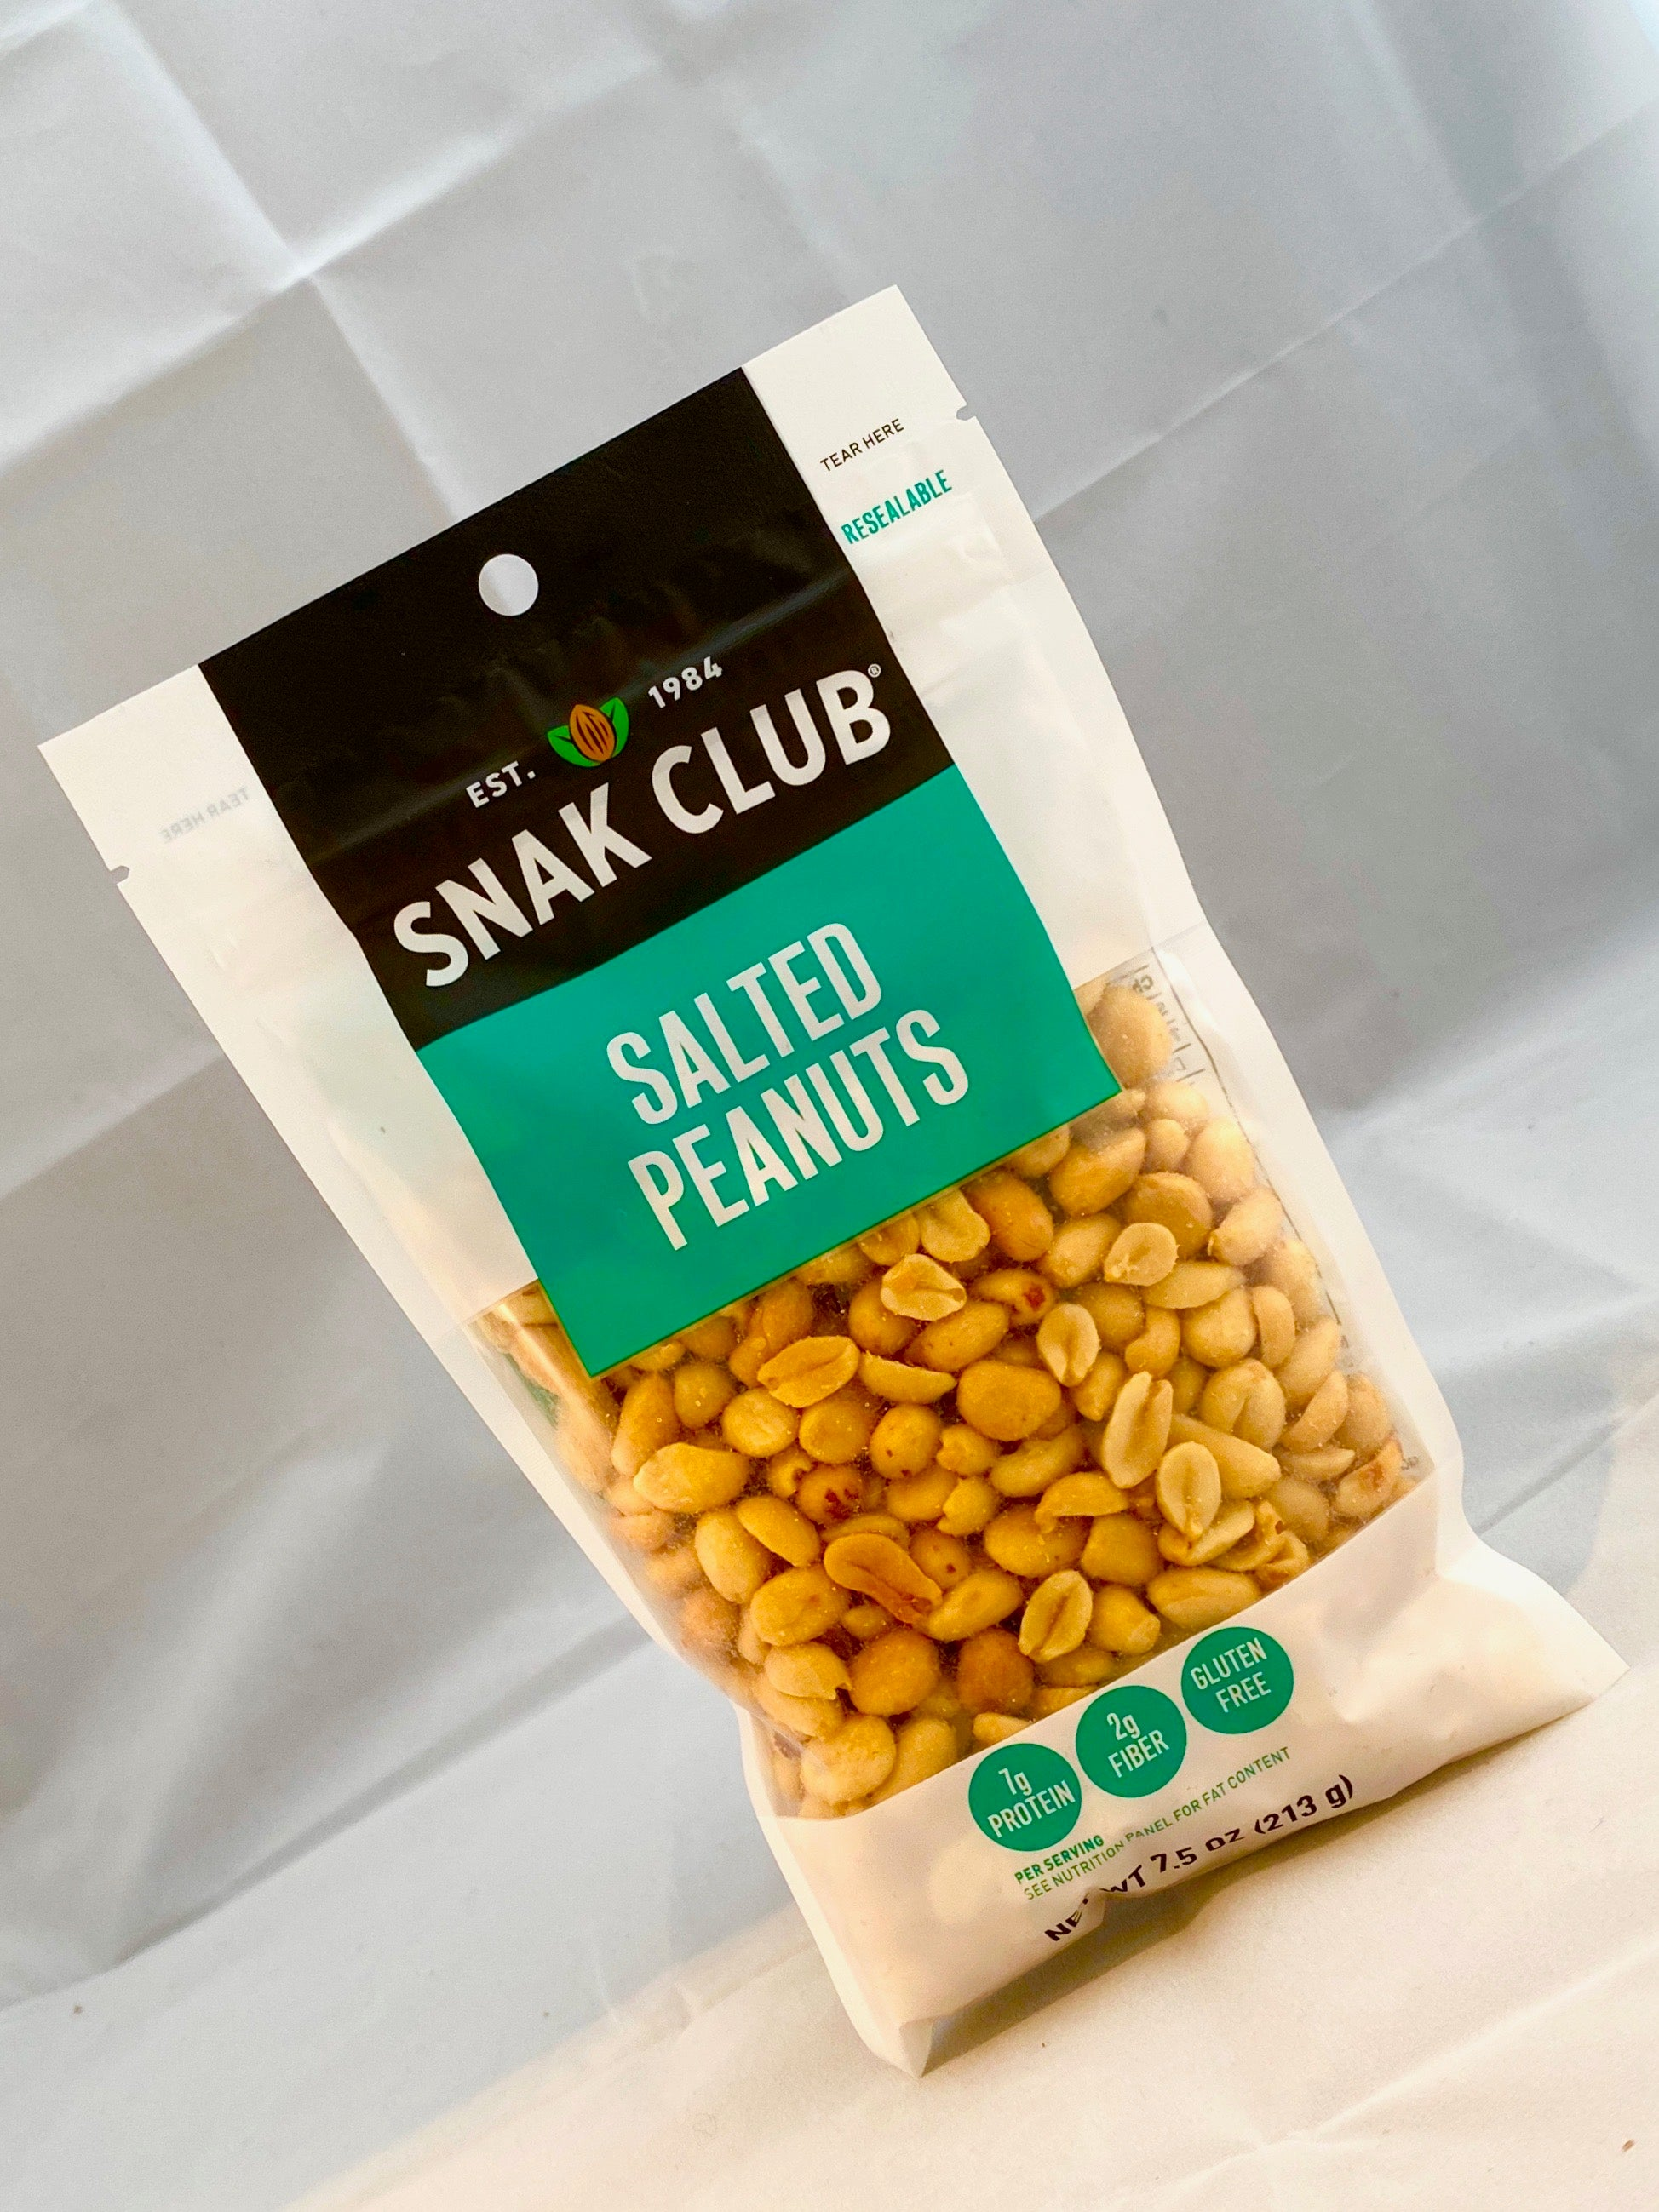 Box of Snak Club Salted Peanuts